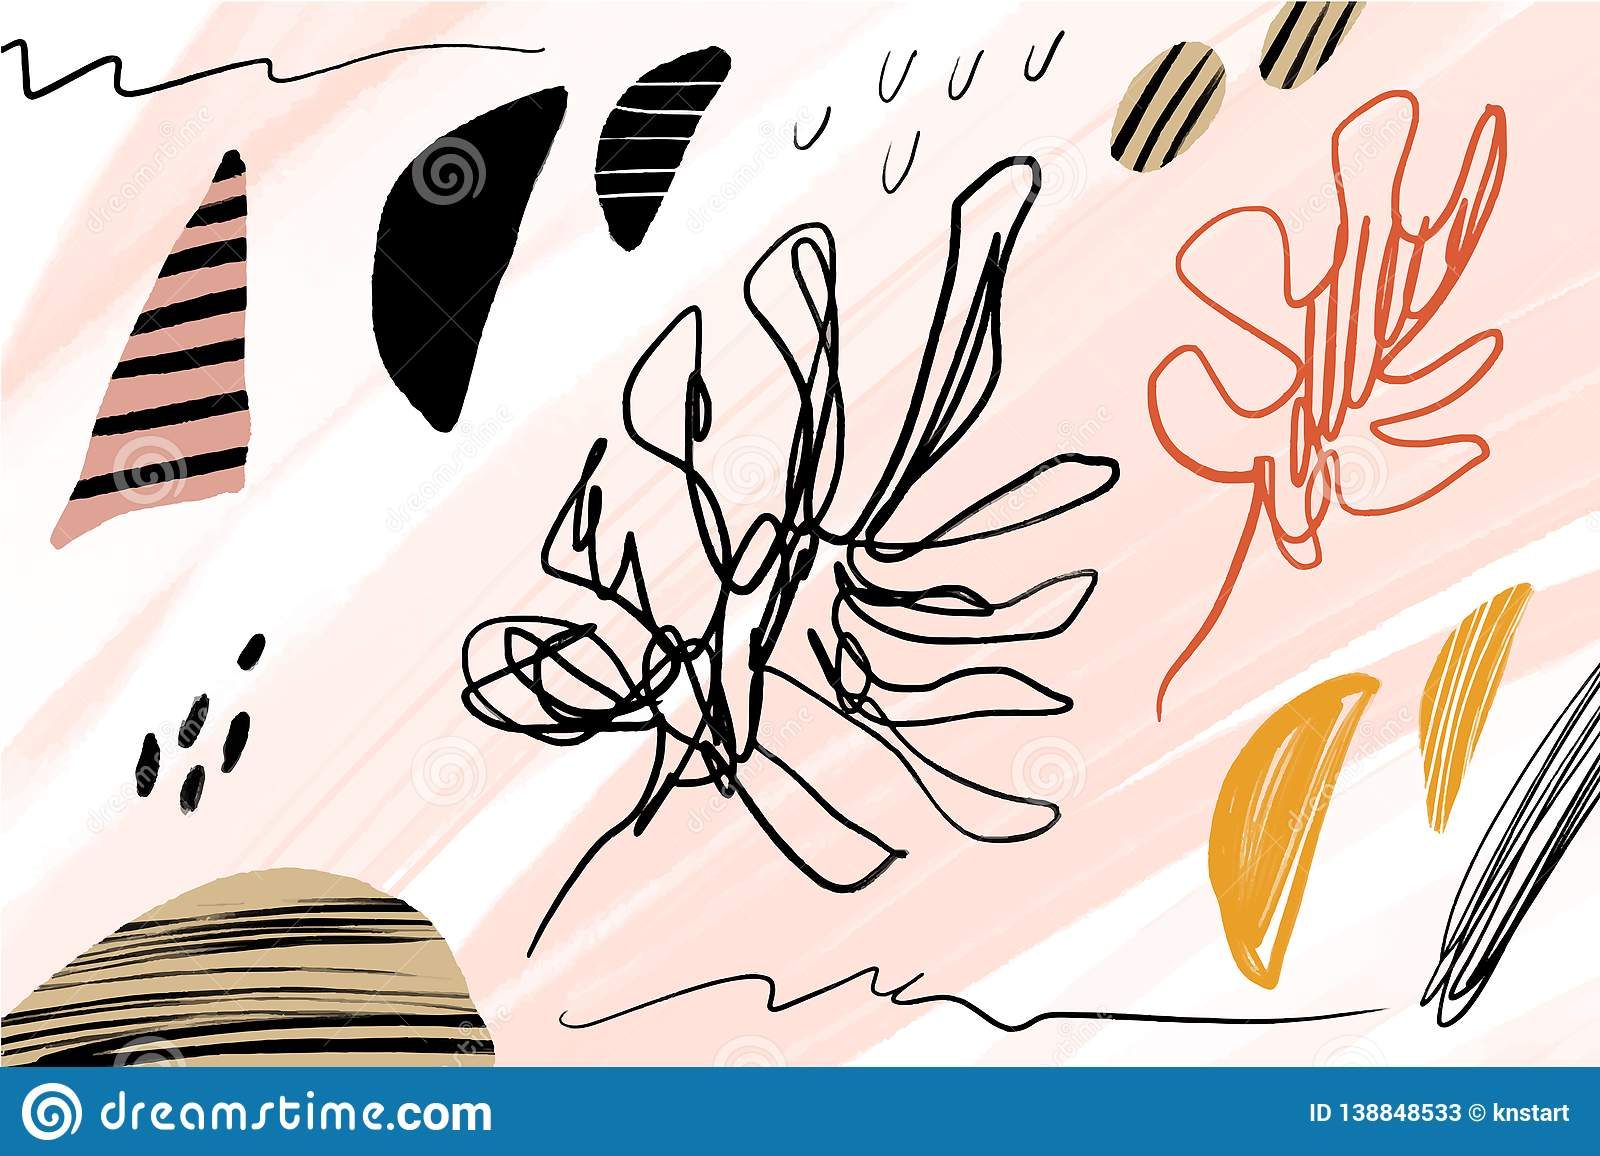 Vector Universal Floral Banner Or Header Tropical Leaves Modern Art Hand Drawn Brush Textures Stock Illustration Illustration Of Hipster Jungle 138848533 Leaves png & psd images with full transparency. dreamstime com